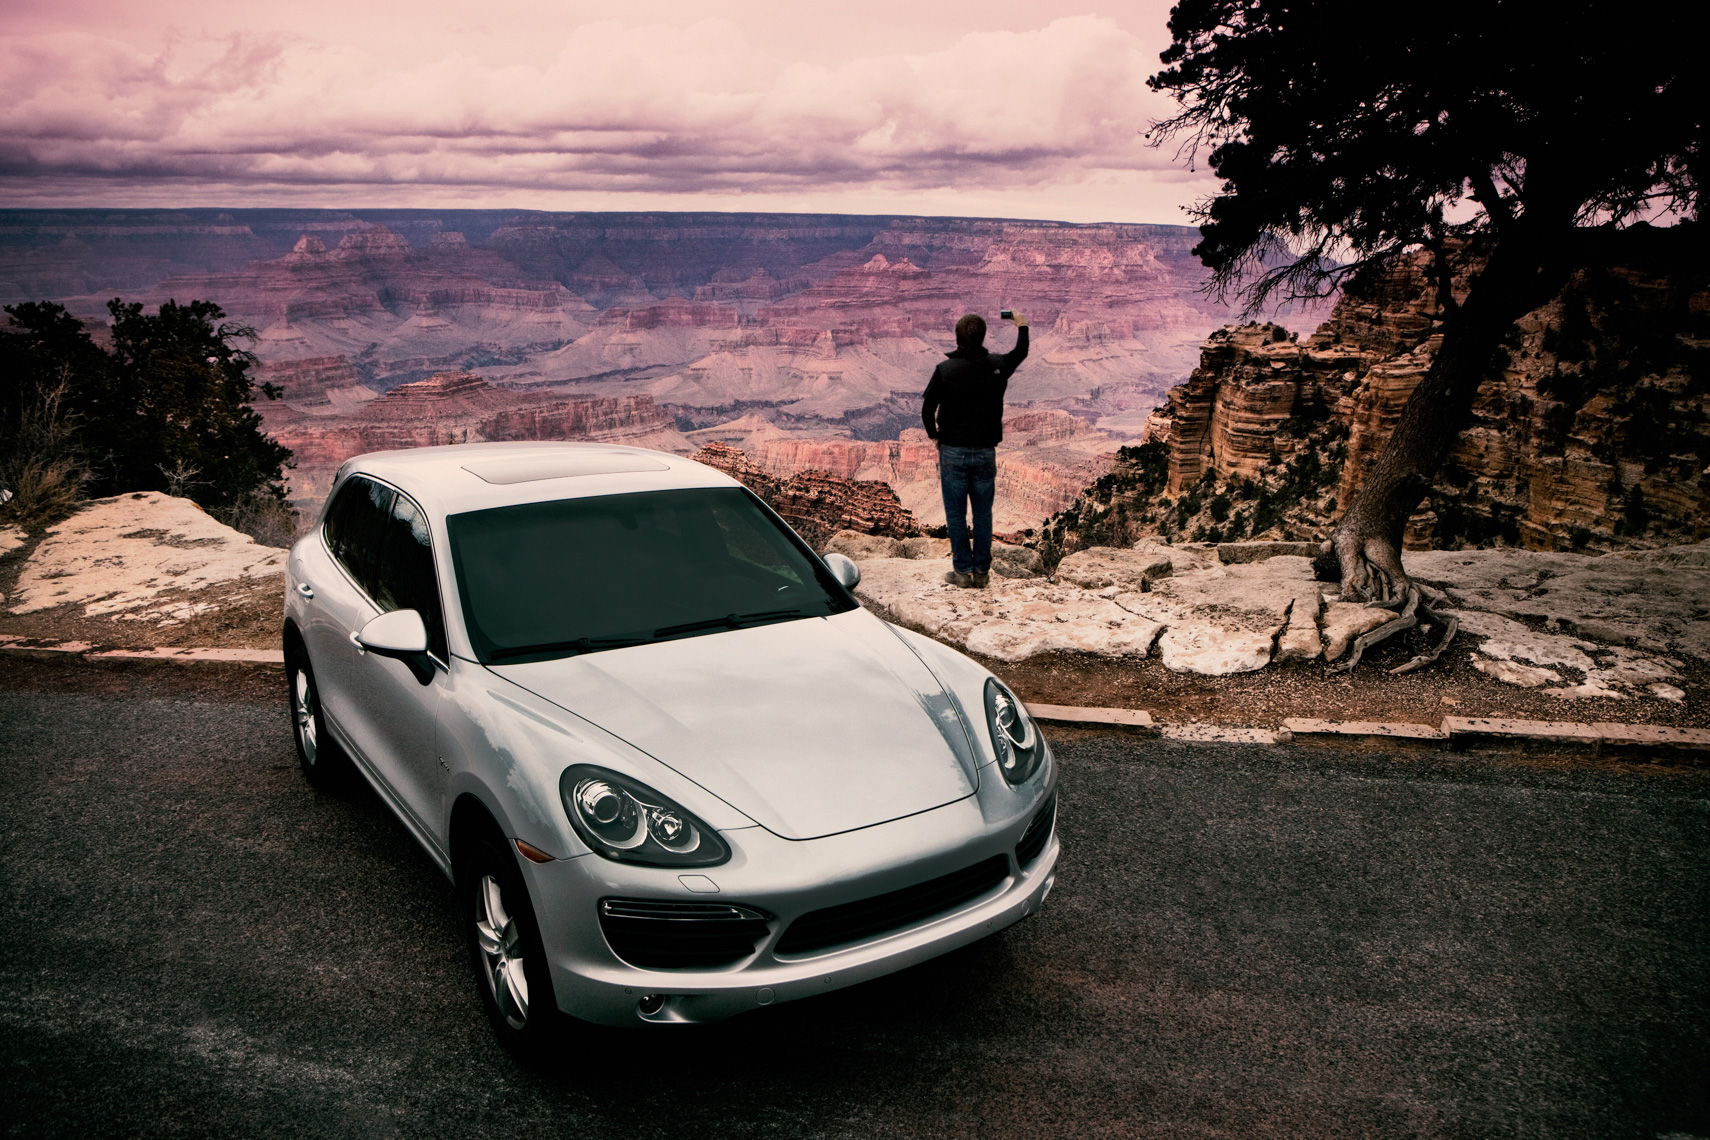 Porsche Cayenne Ad by commercial automotive car photographer Michael Grecco